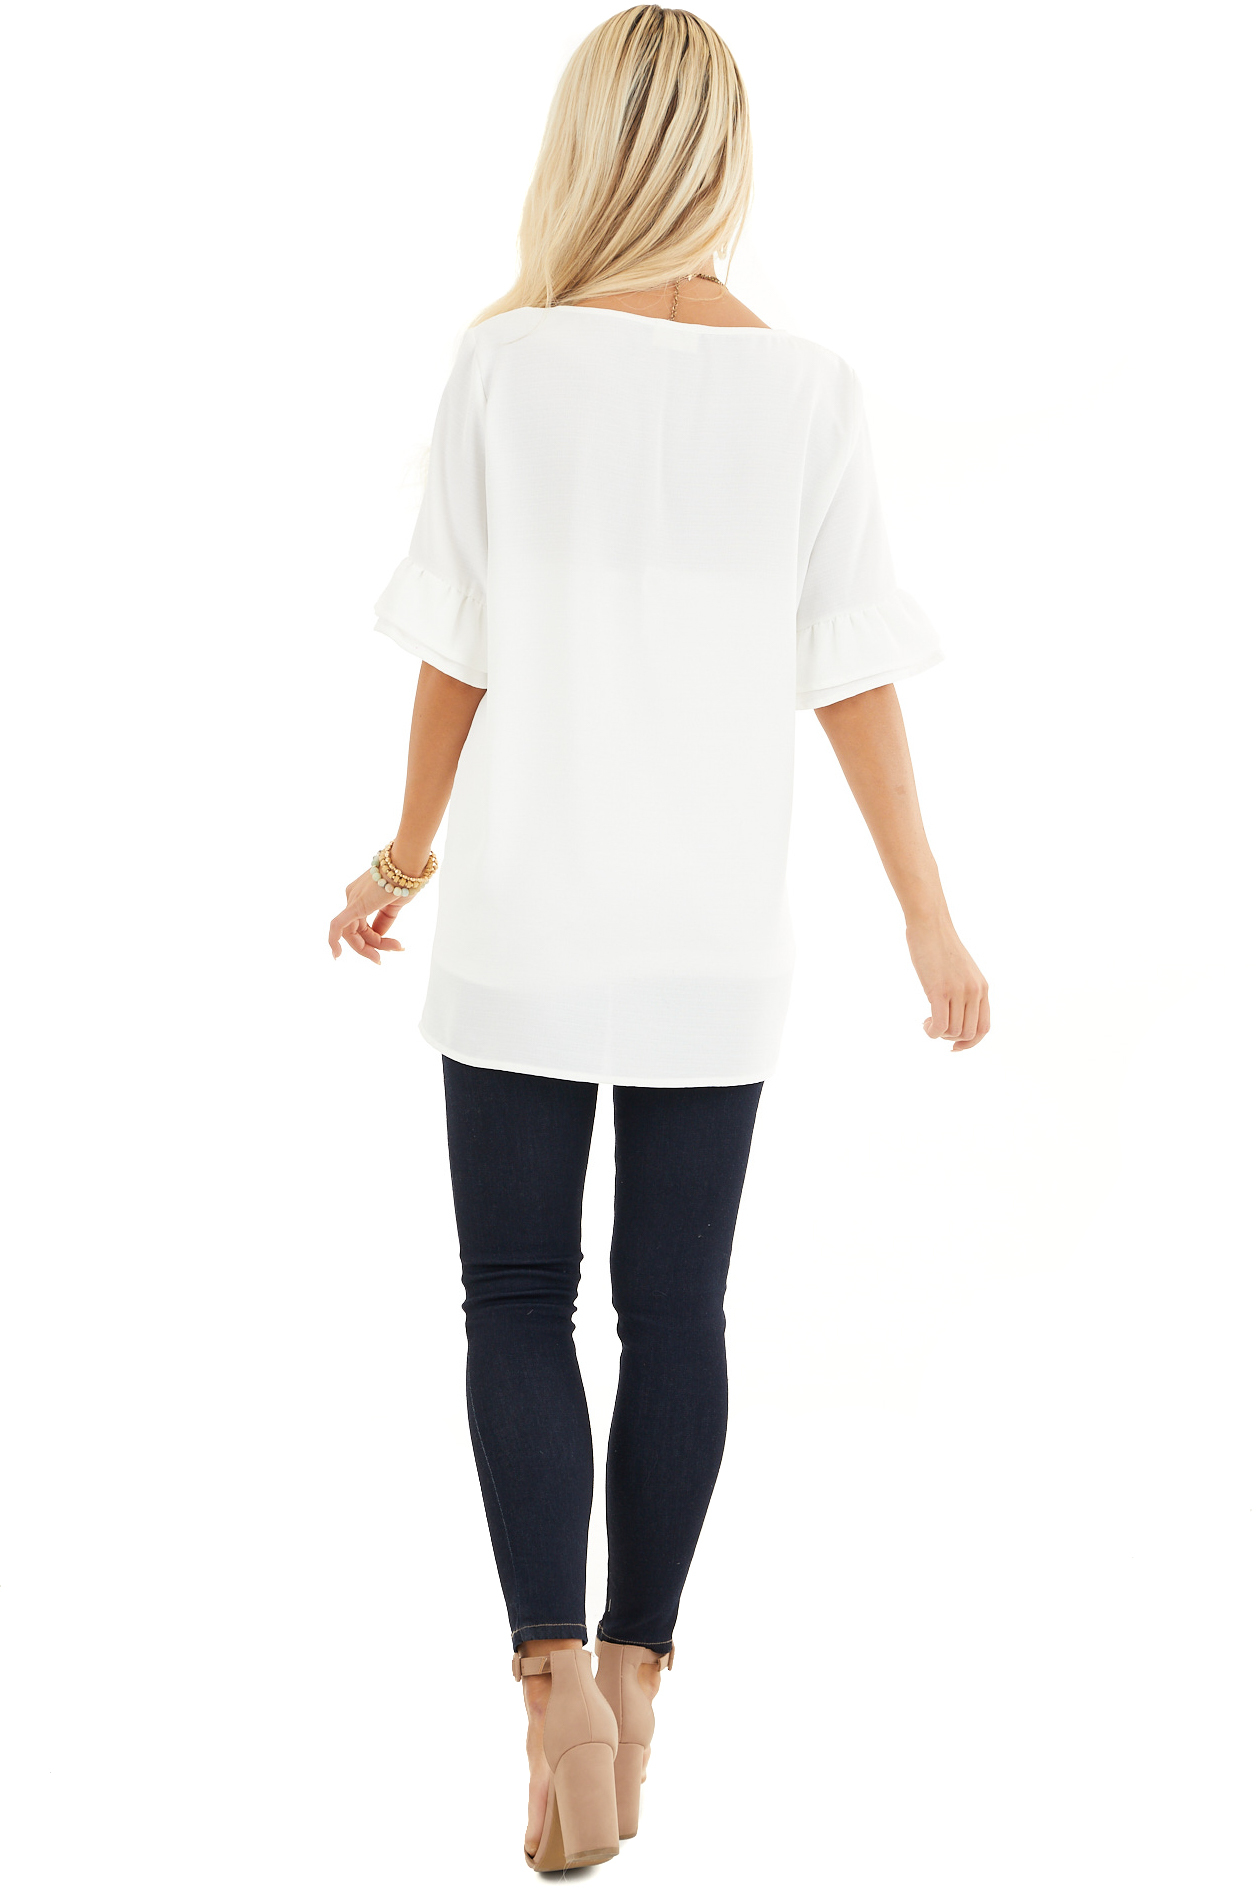 Off White Blouse with Short Ruffled Bell Sleeves back full body